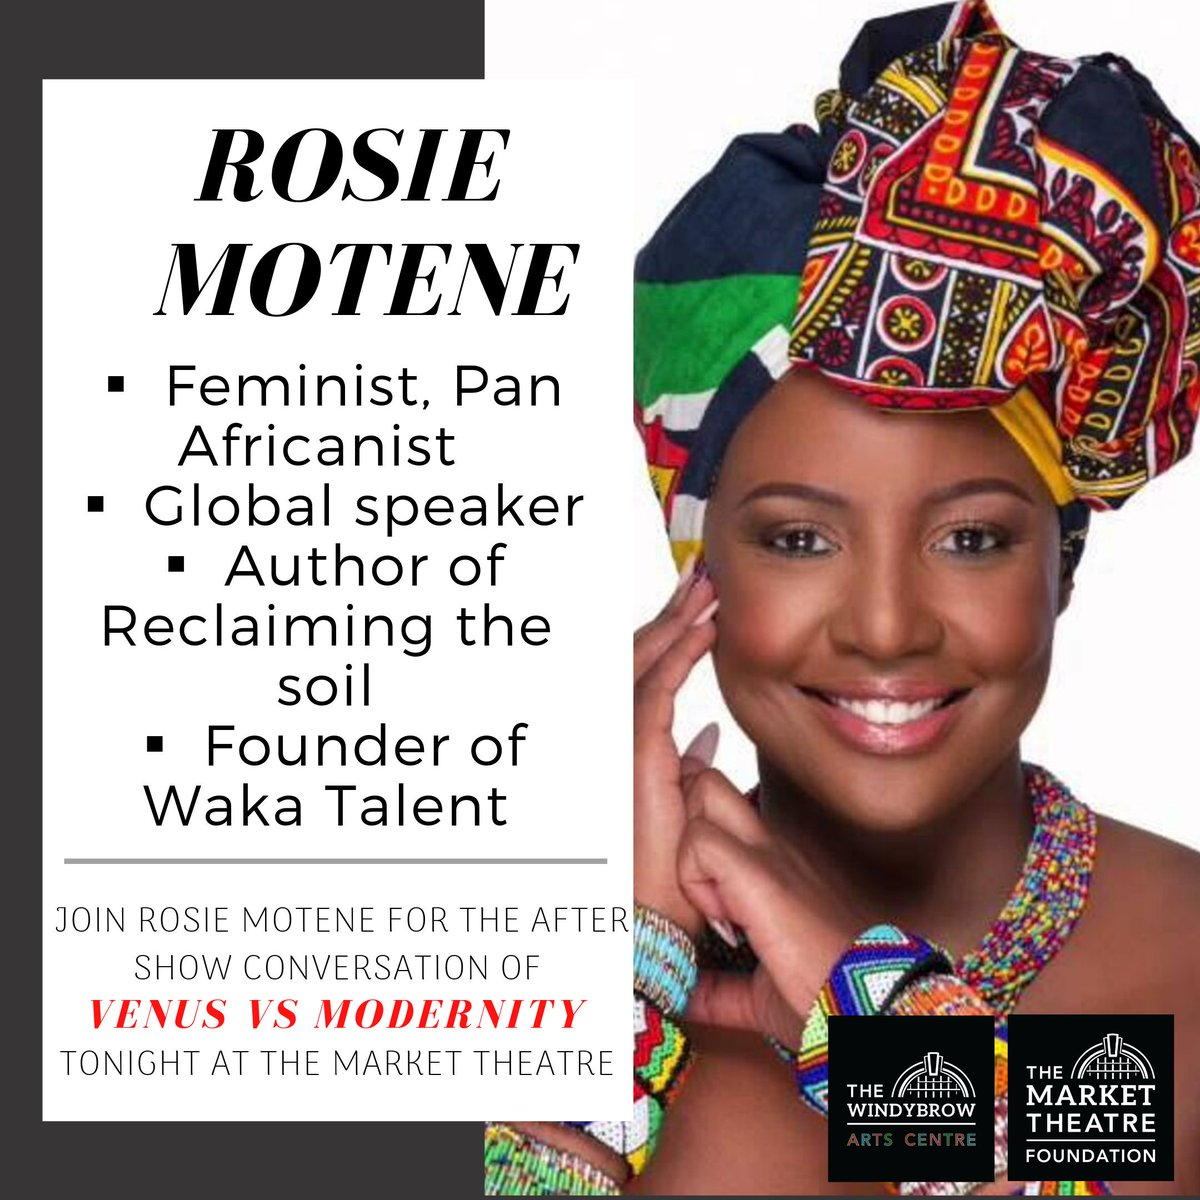 Rosie Motene💋 will facilitate tomorrow's talk after the performance of Venus VS Modernity: The story of Saartjie Baartman. This Feminist is a survivor, global speaker. Pan Africanist. Award-winning author of Reclaiming The Soil and Founder of Waka talent. #womeninconversation